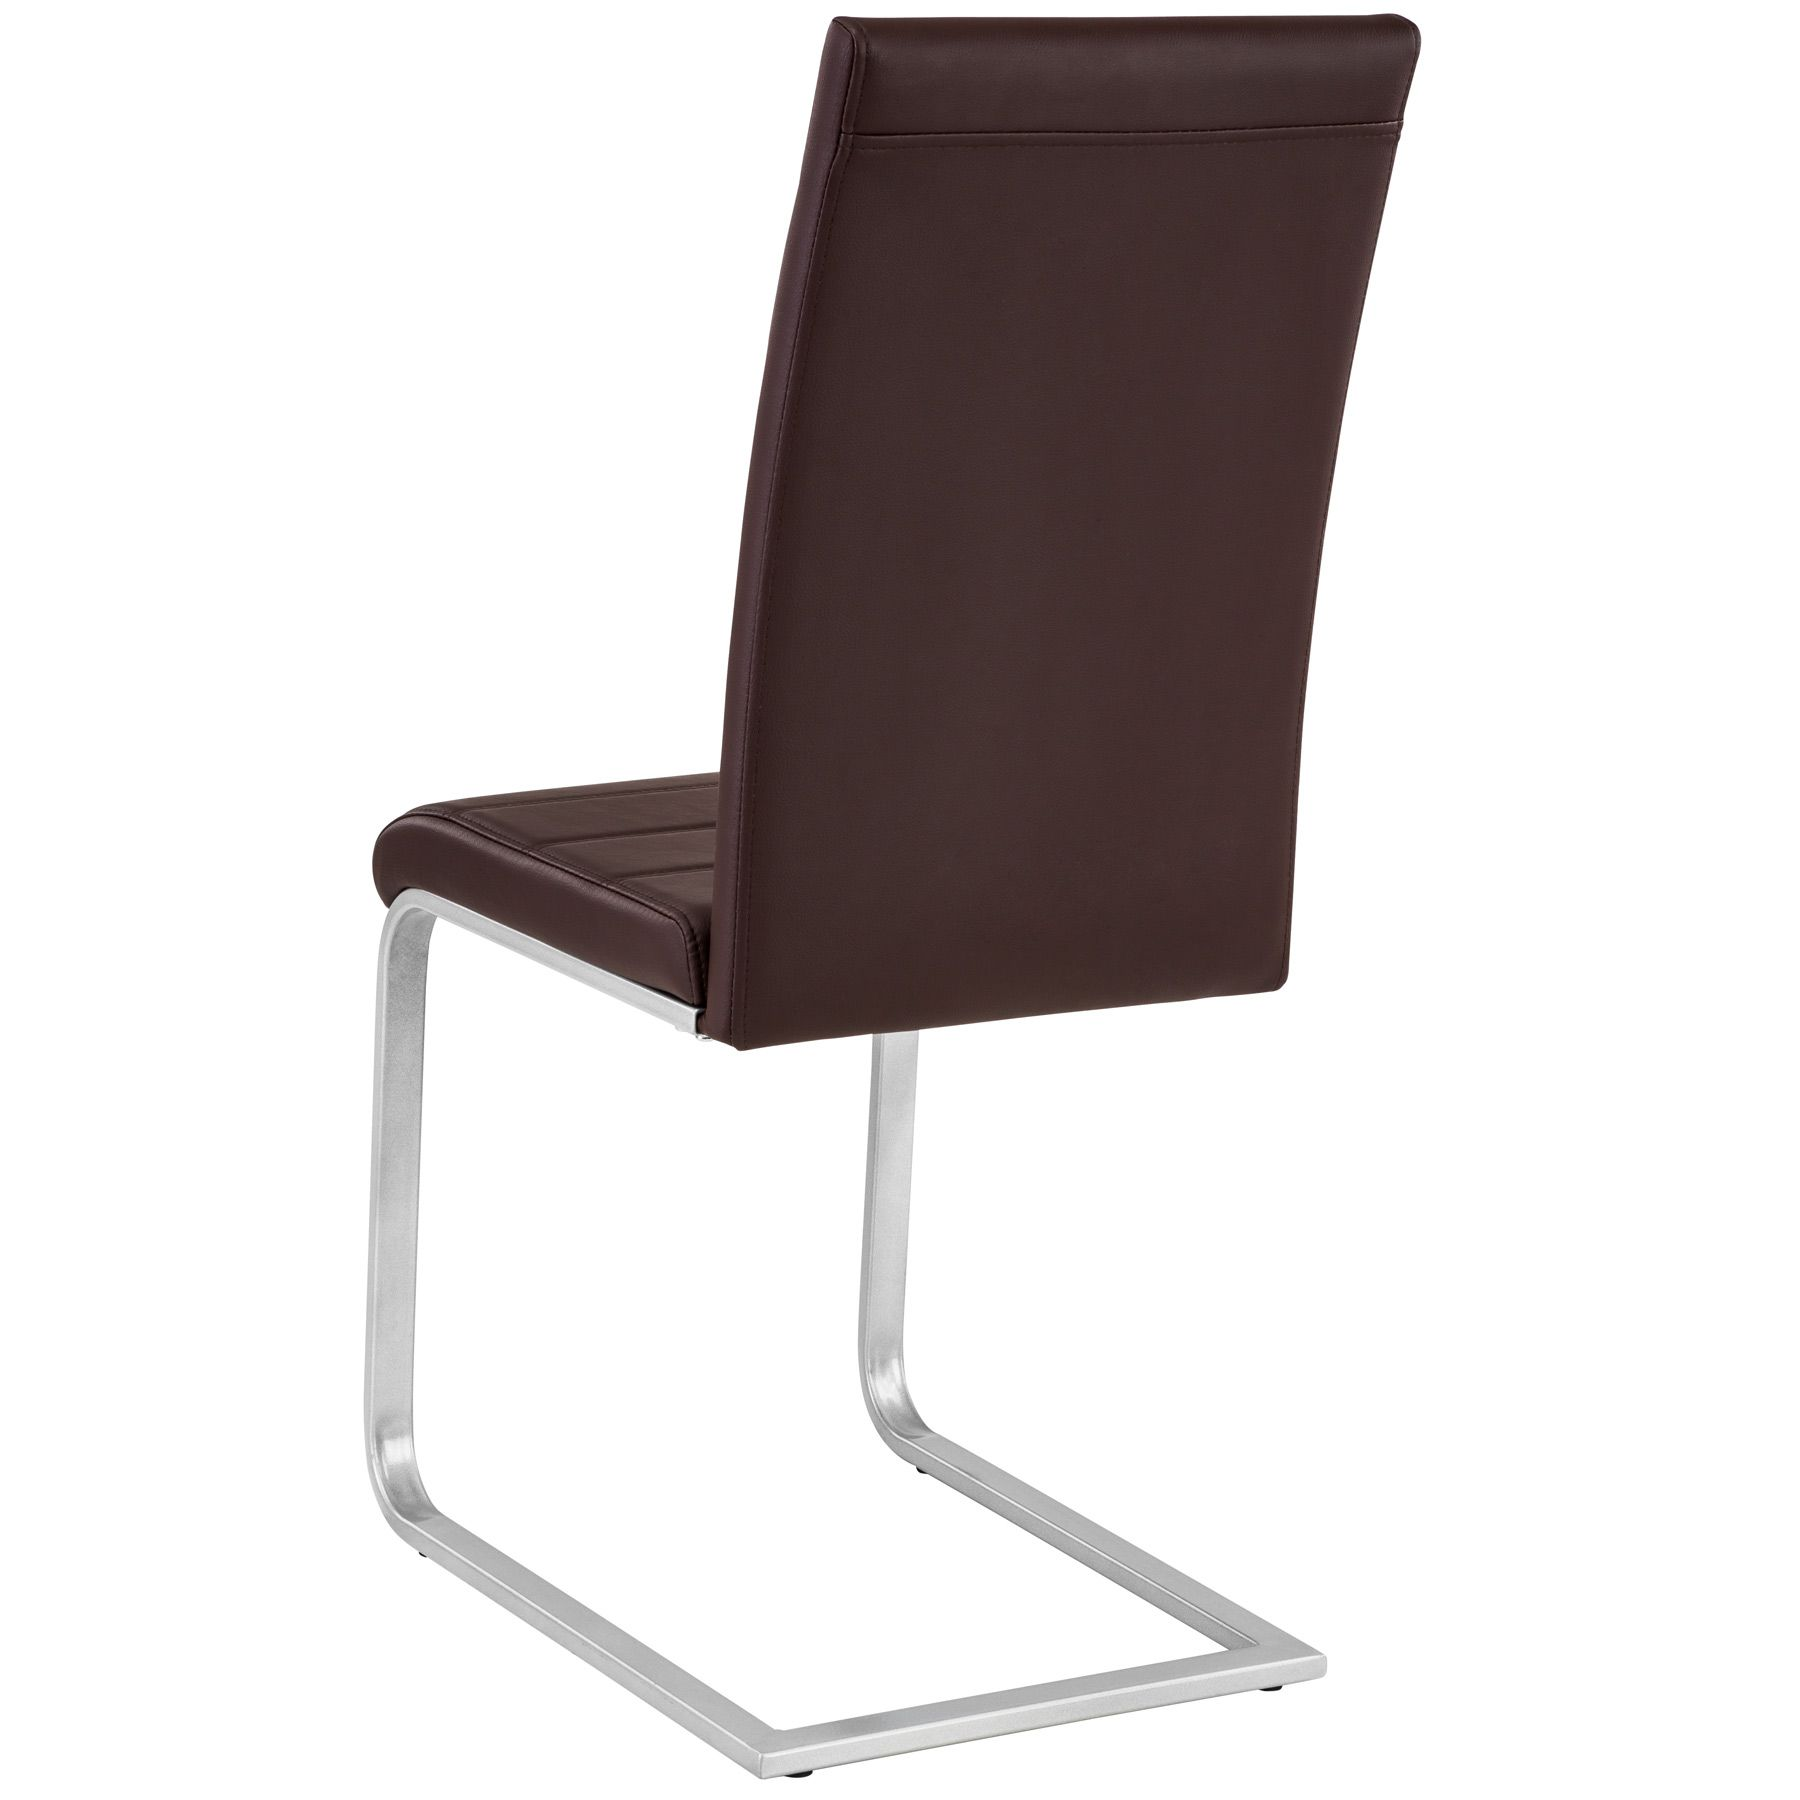 Set Of 4 Modern Cantilever Dining Chairs Room Chair Table